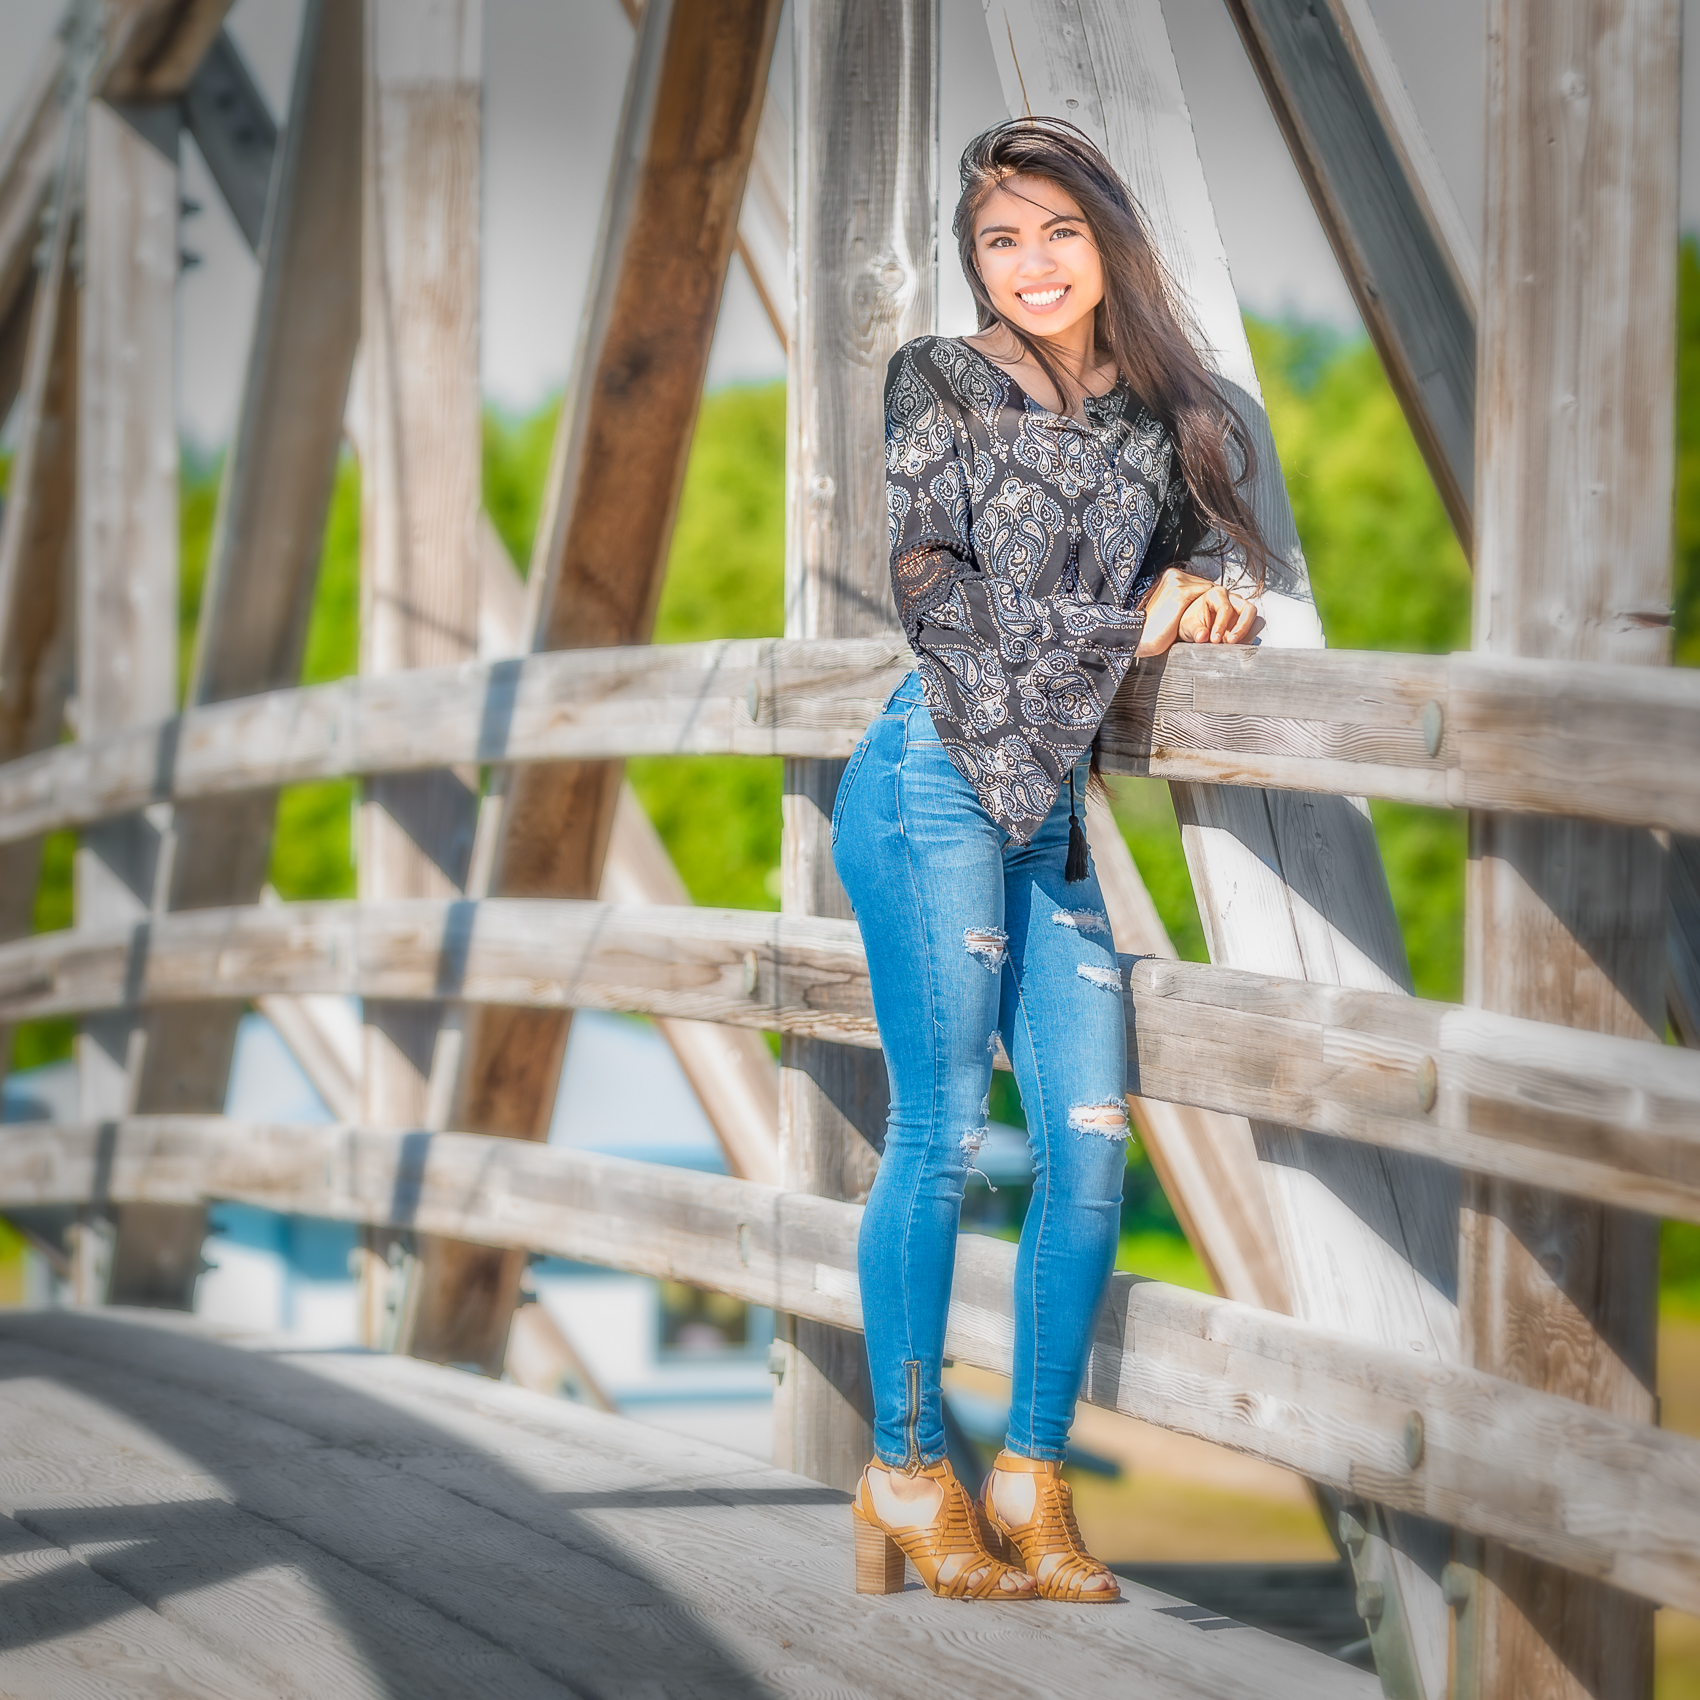 2016-06-08 Rose Moth Senior Portraits-130-Edit.jpg